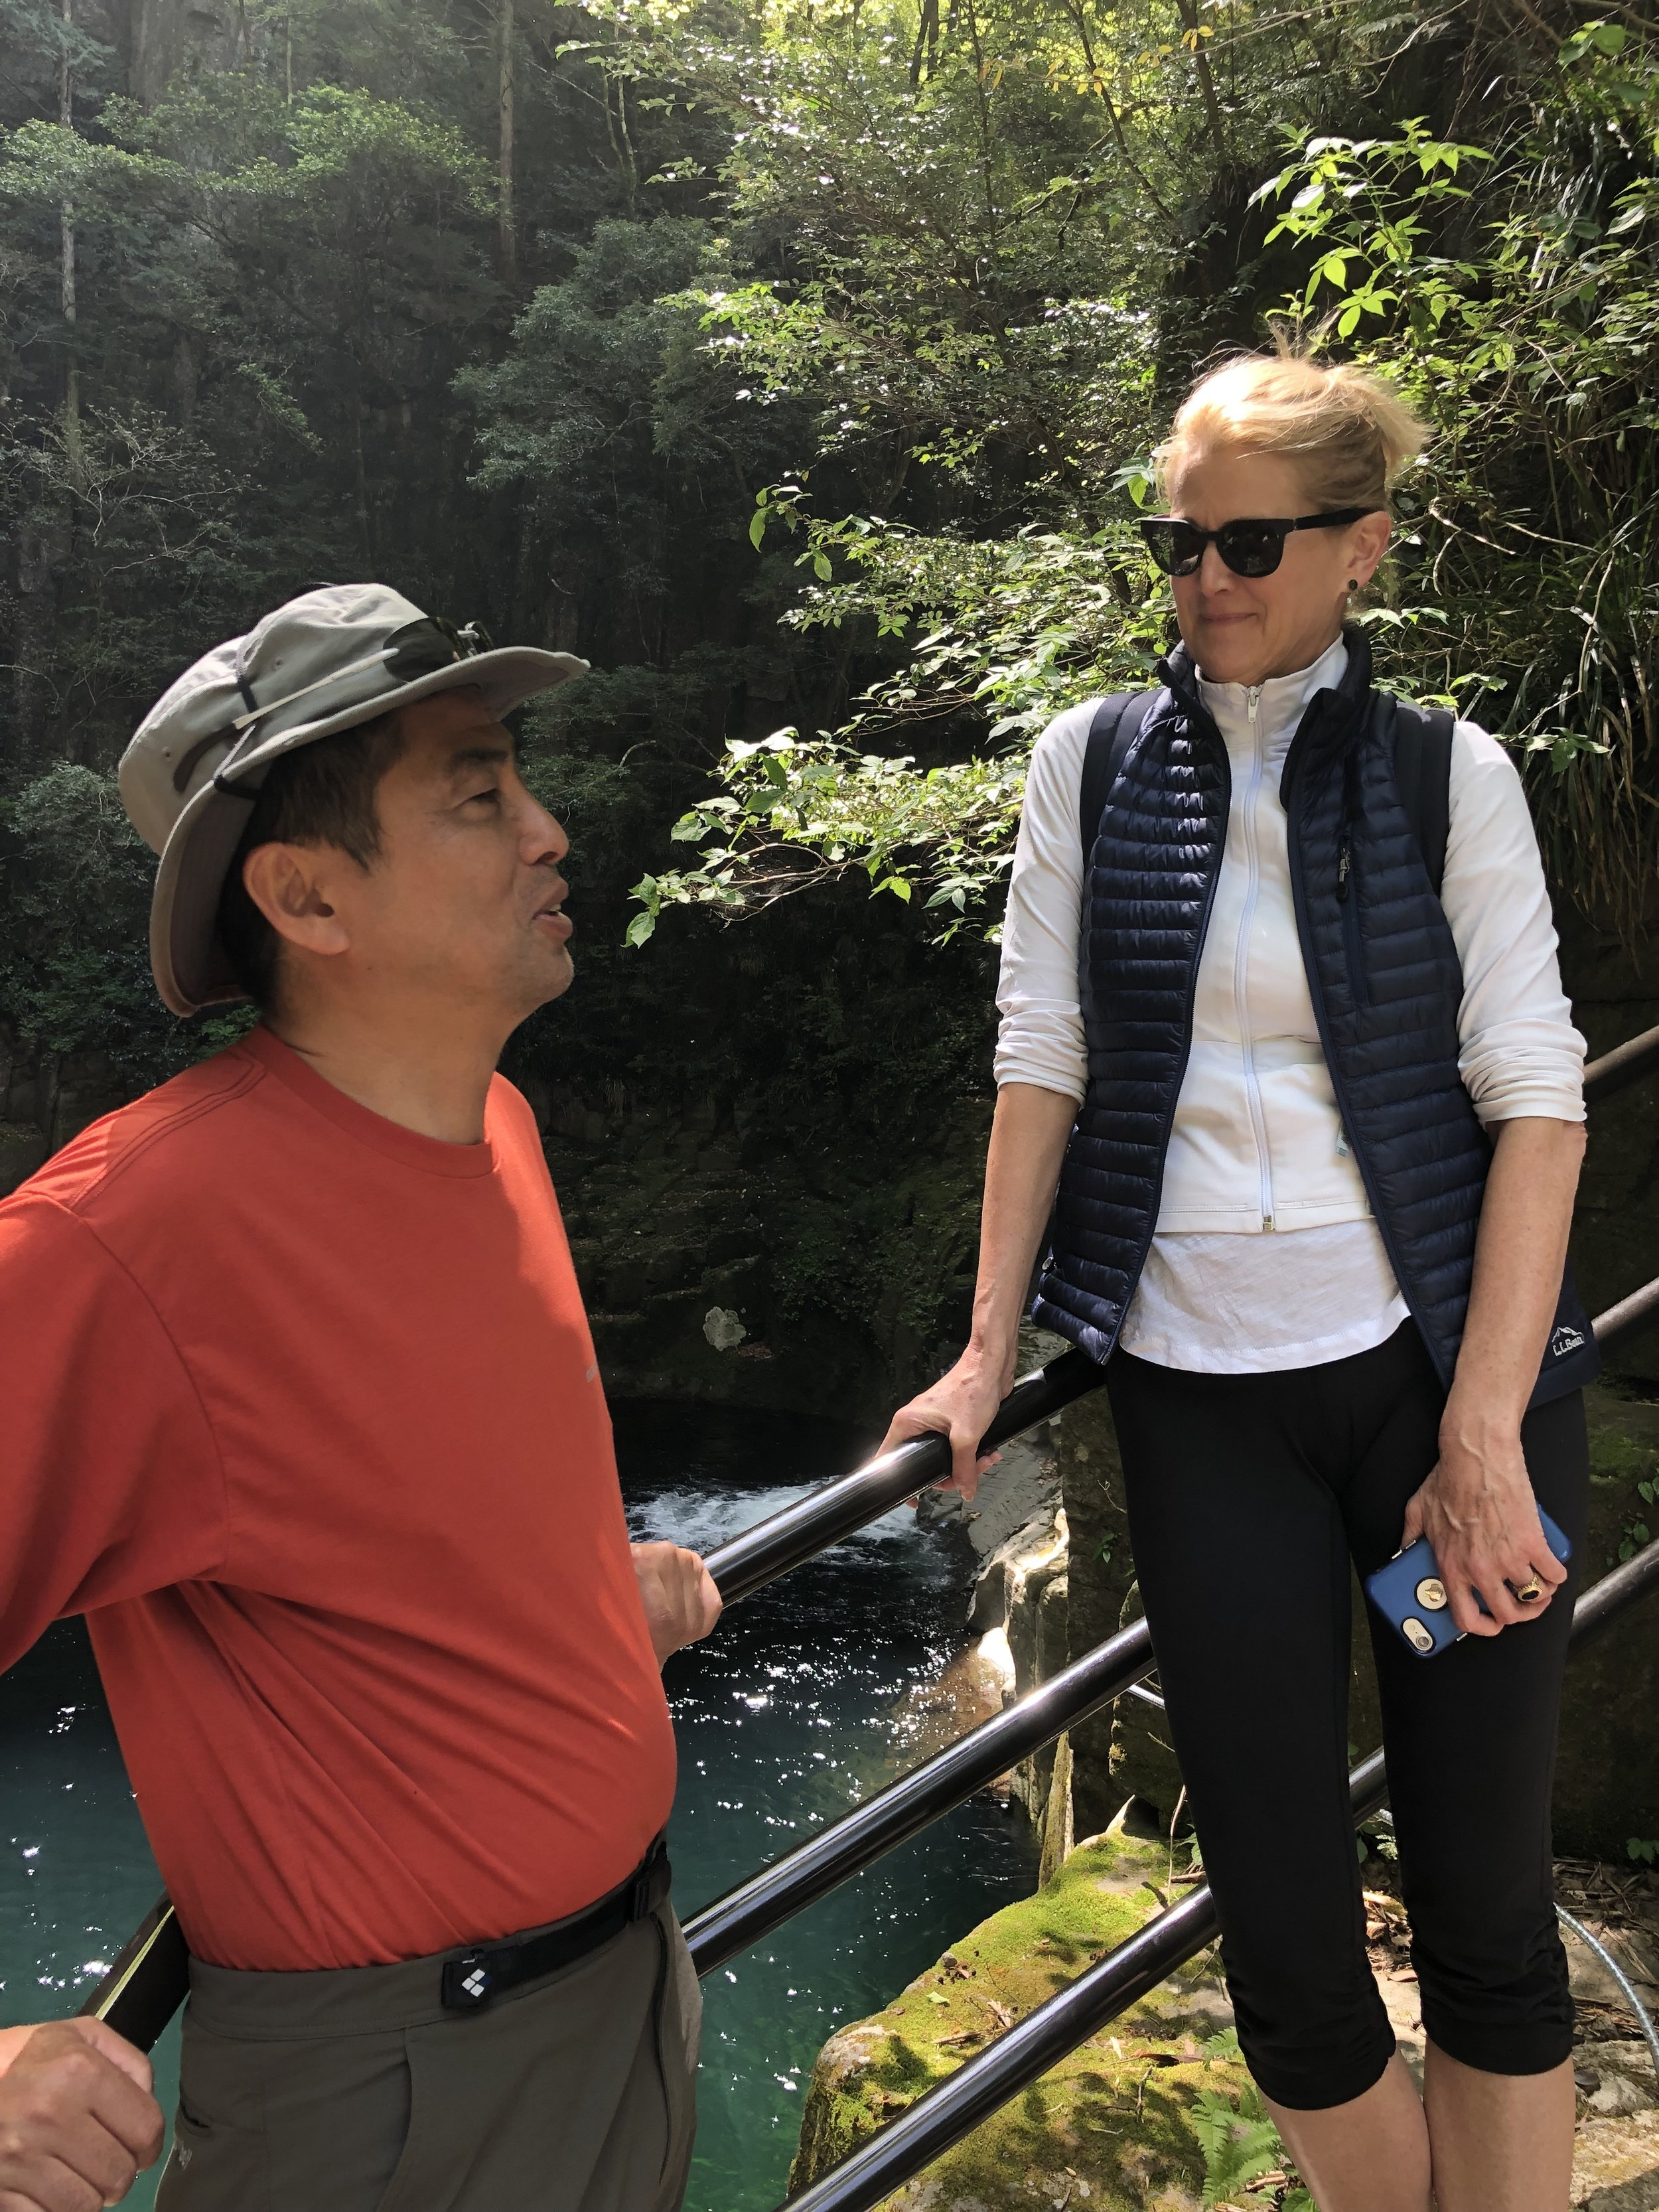 Katie with our guide, host and monk at Akame Falls (Ninja training area)